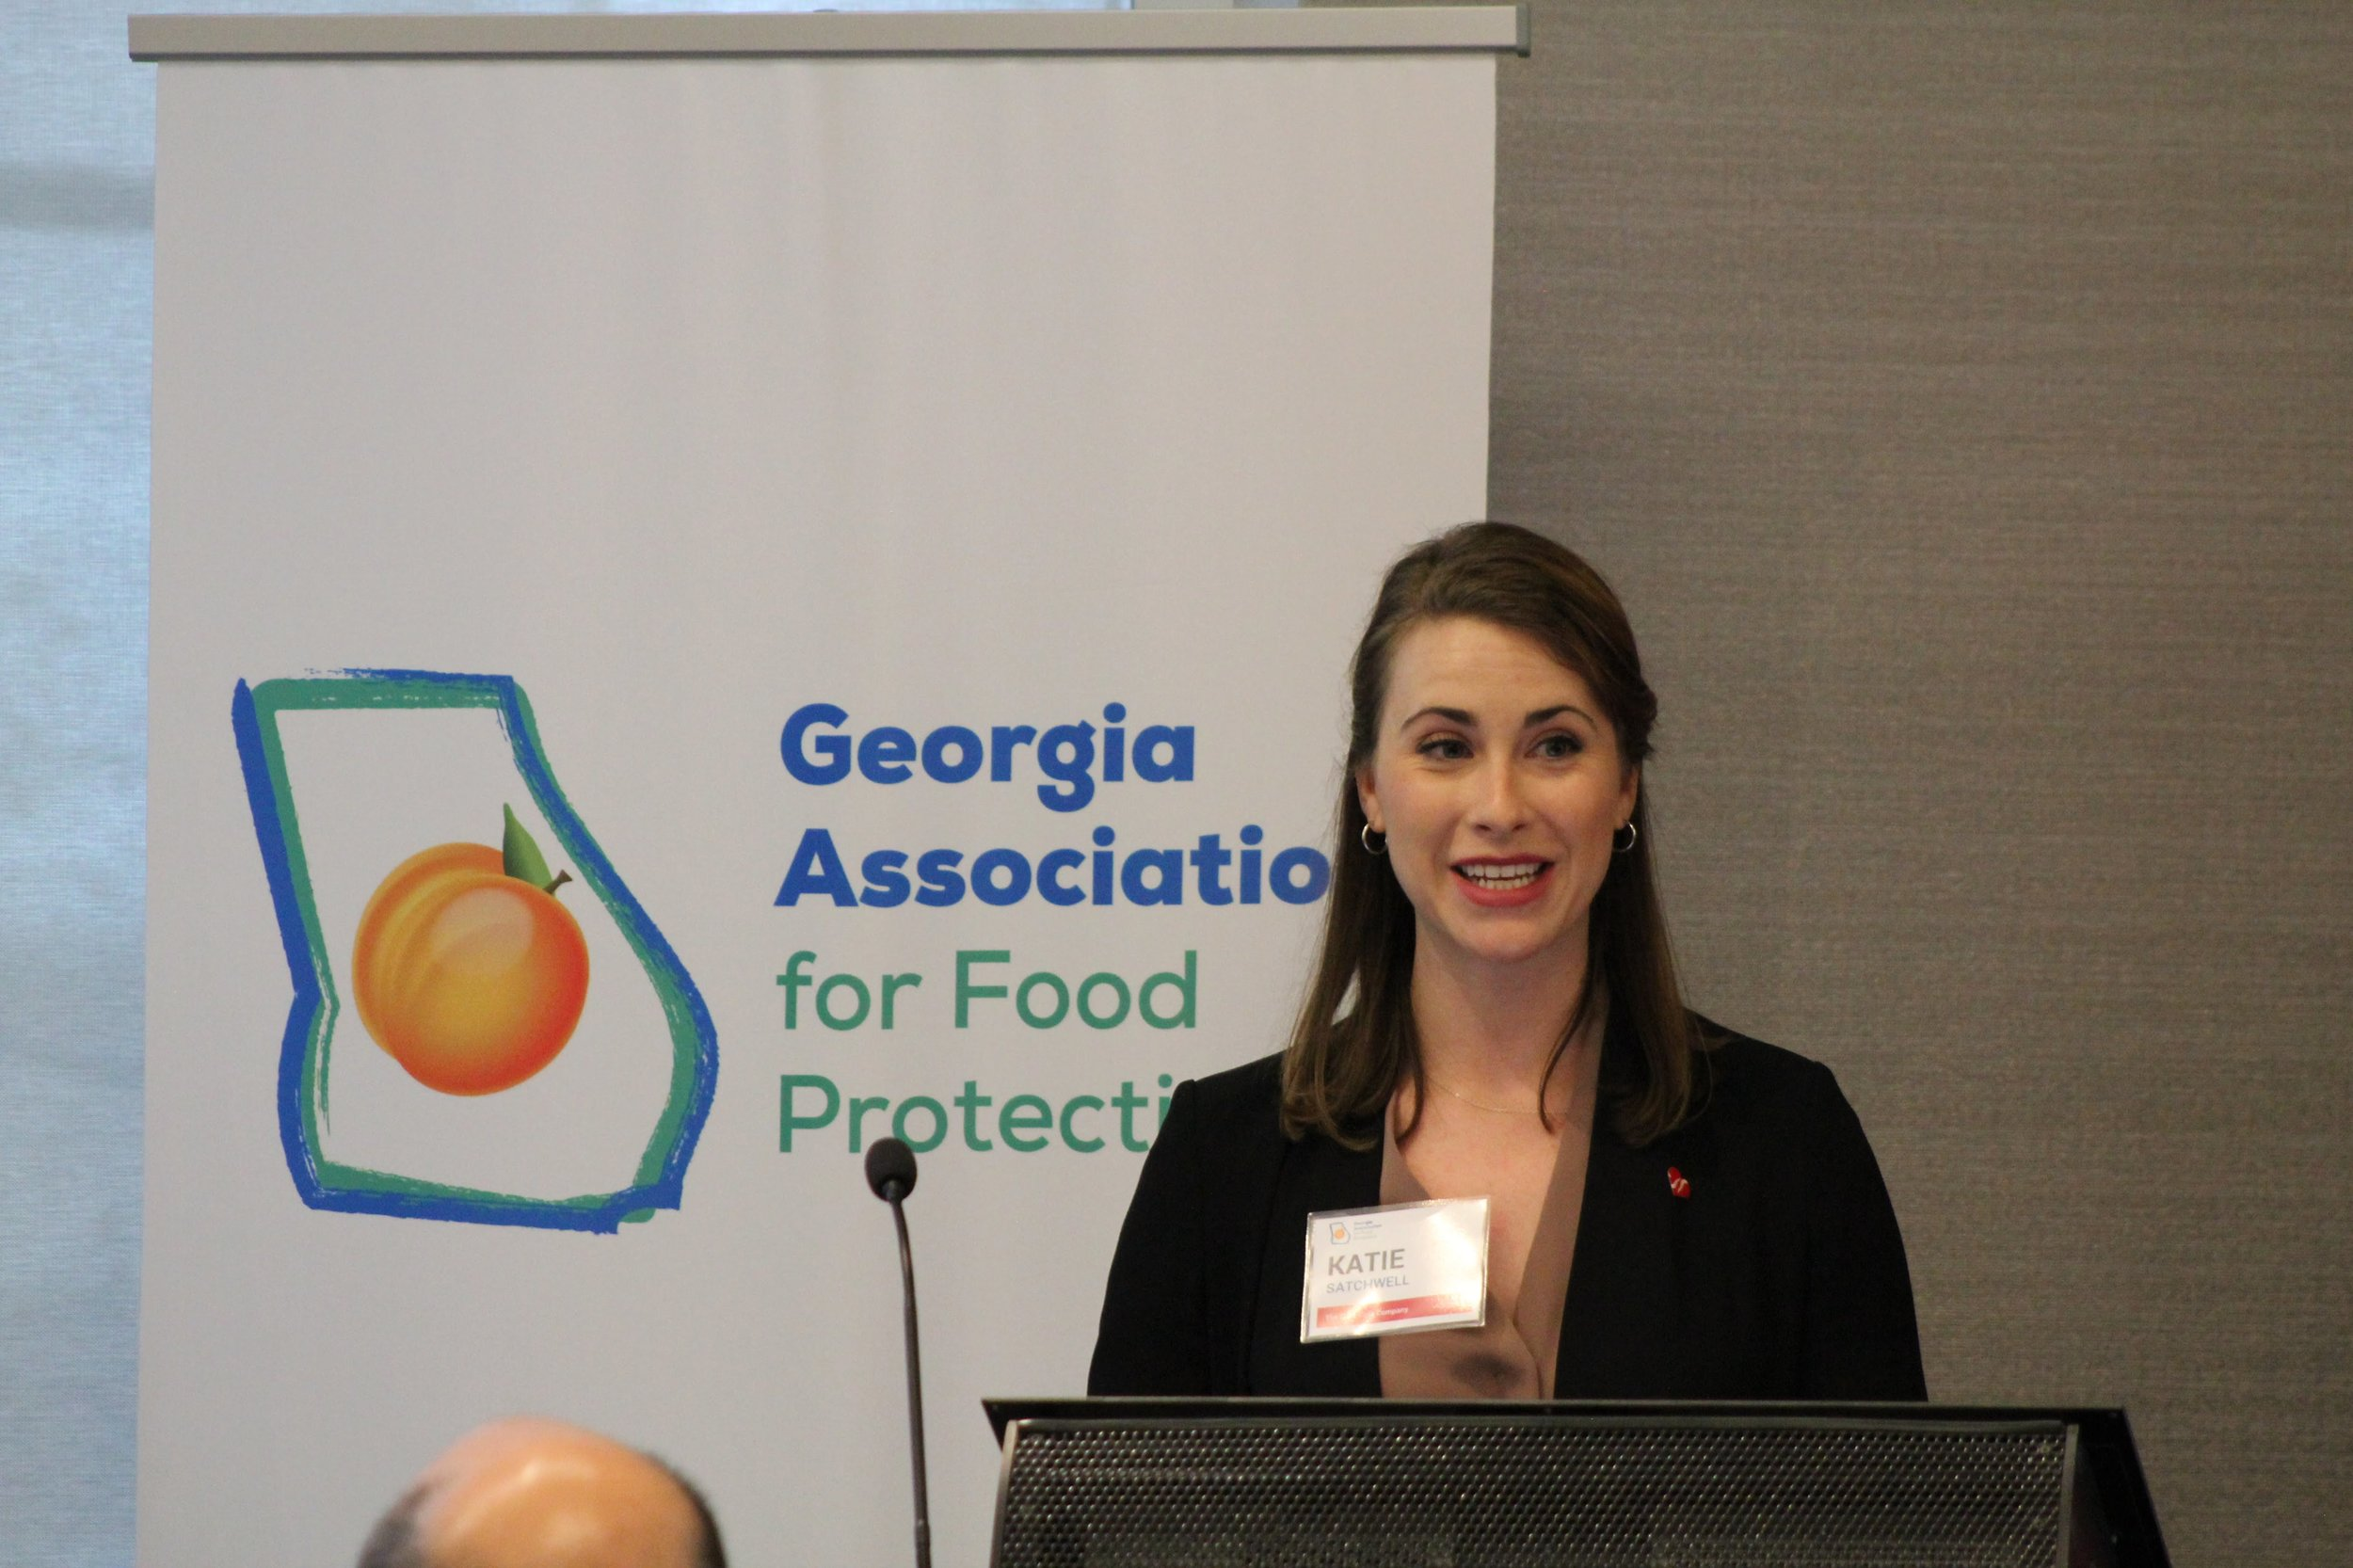 Katie Satchwell, President-Elect - Katie Satchwell (The Coca-Cola Company), is currently the Georgia Association for Food Protection's President-Elect.Contact: ksatchwell@coca-cola.com